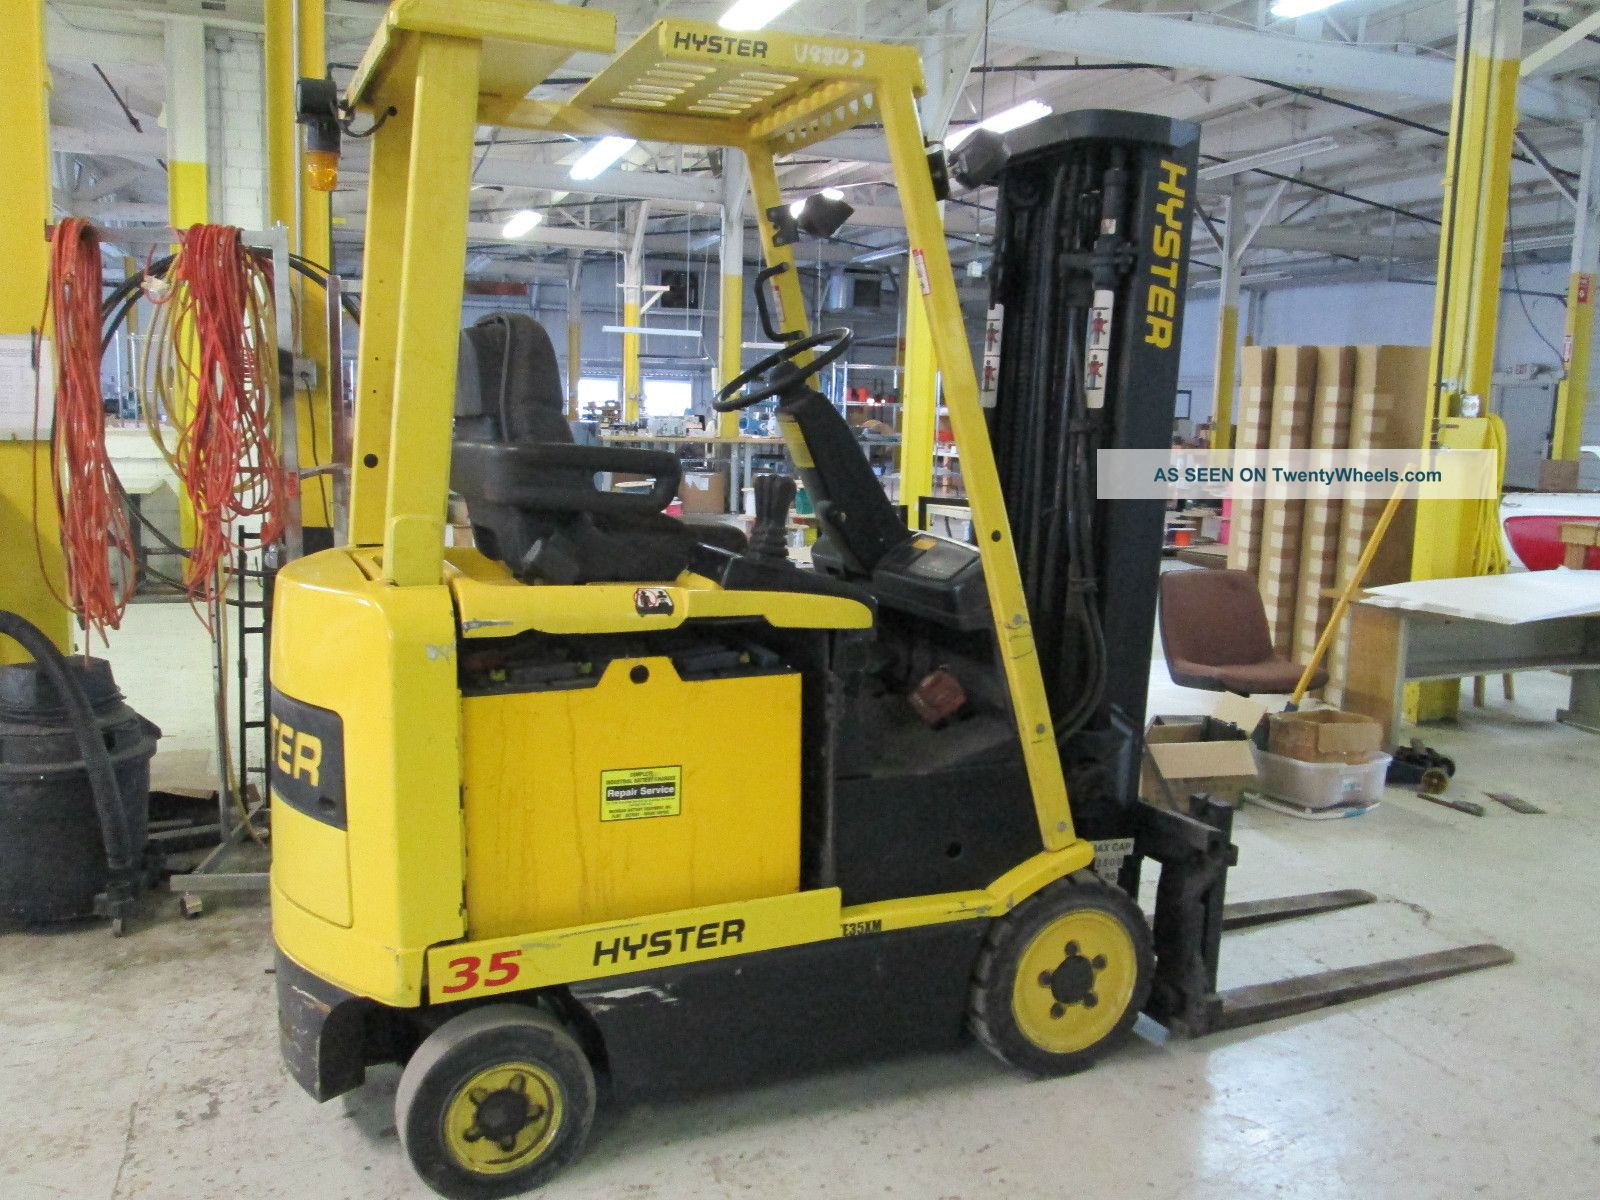 Hyster E35xm Electric Forklift Fork Lift Ohio Tow Motor 3 Stage Mast Forklifts & Other Lifts photo